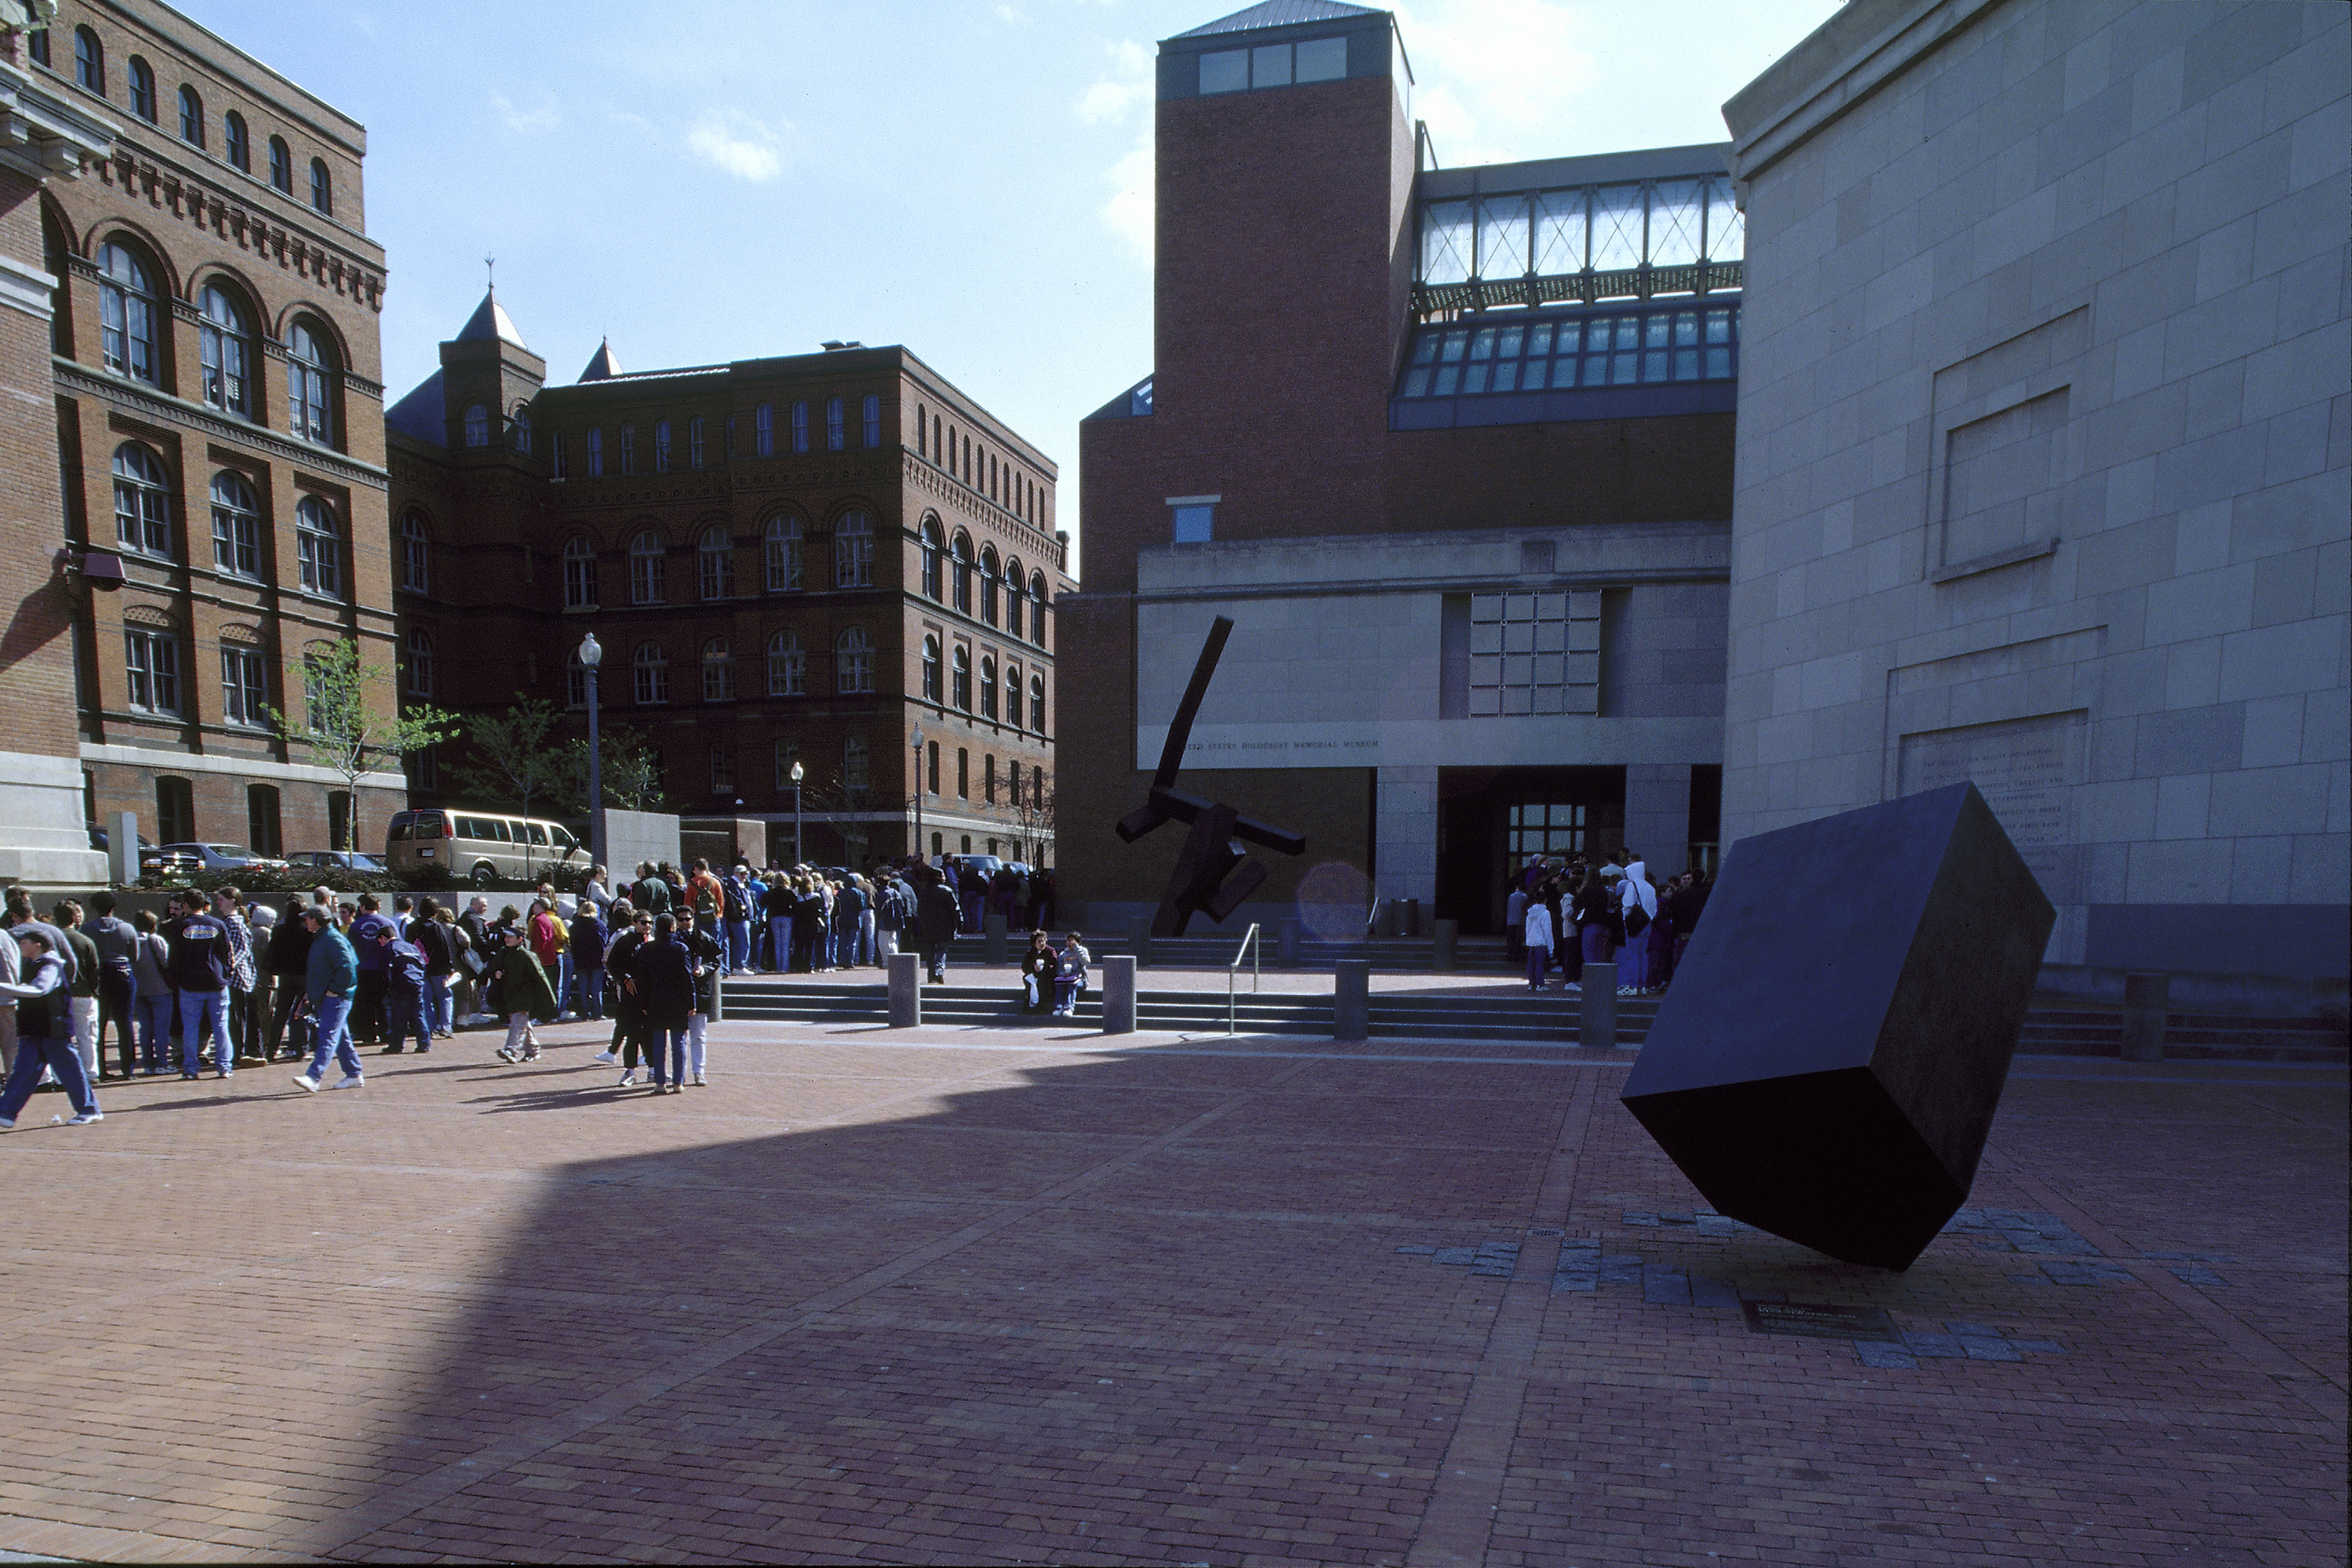 Visitors walk through the Eisenhower Plaza on their way to the U.S. Holocaust Memorial Museum.